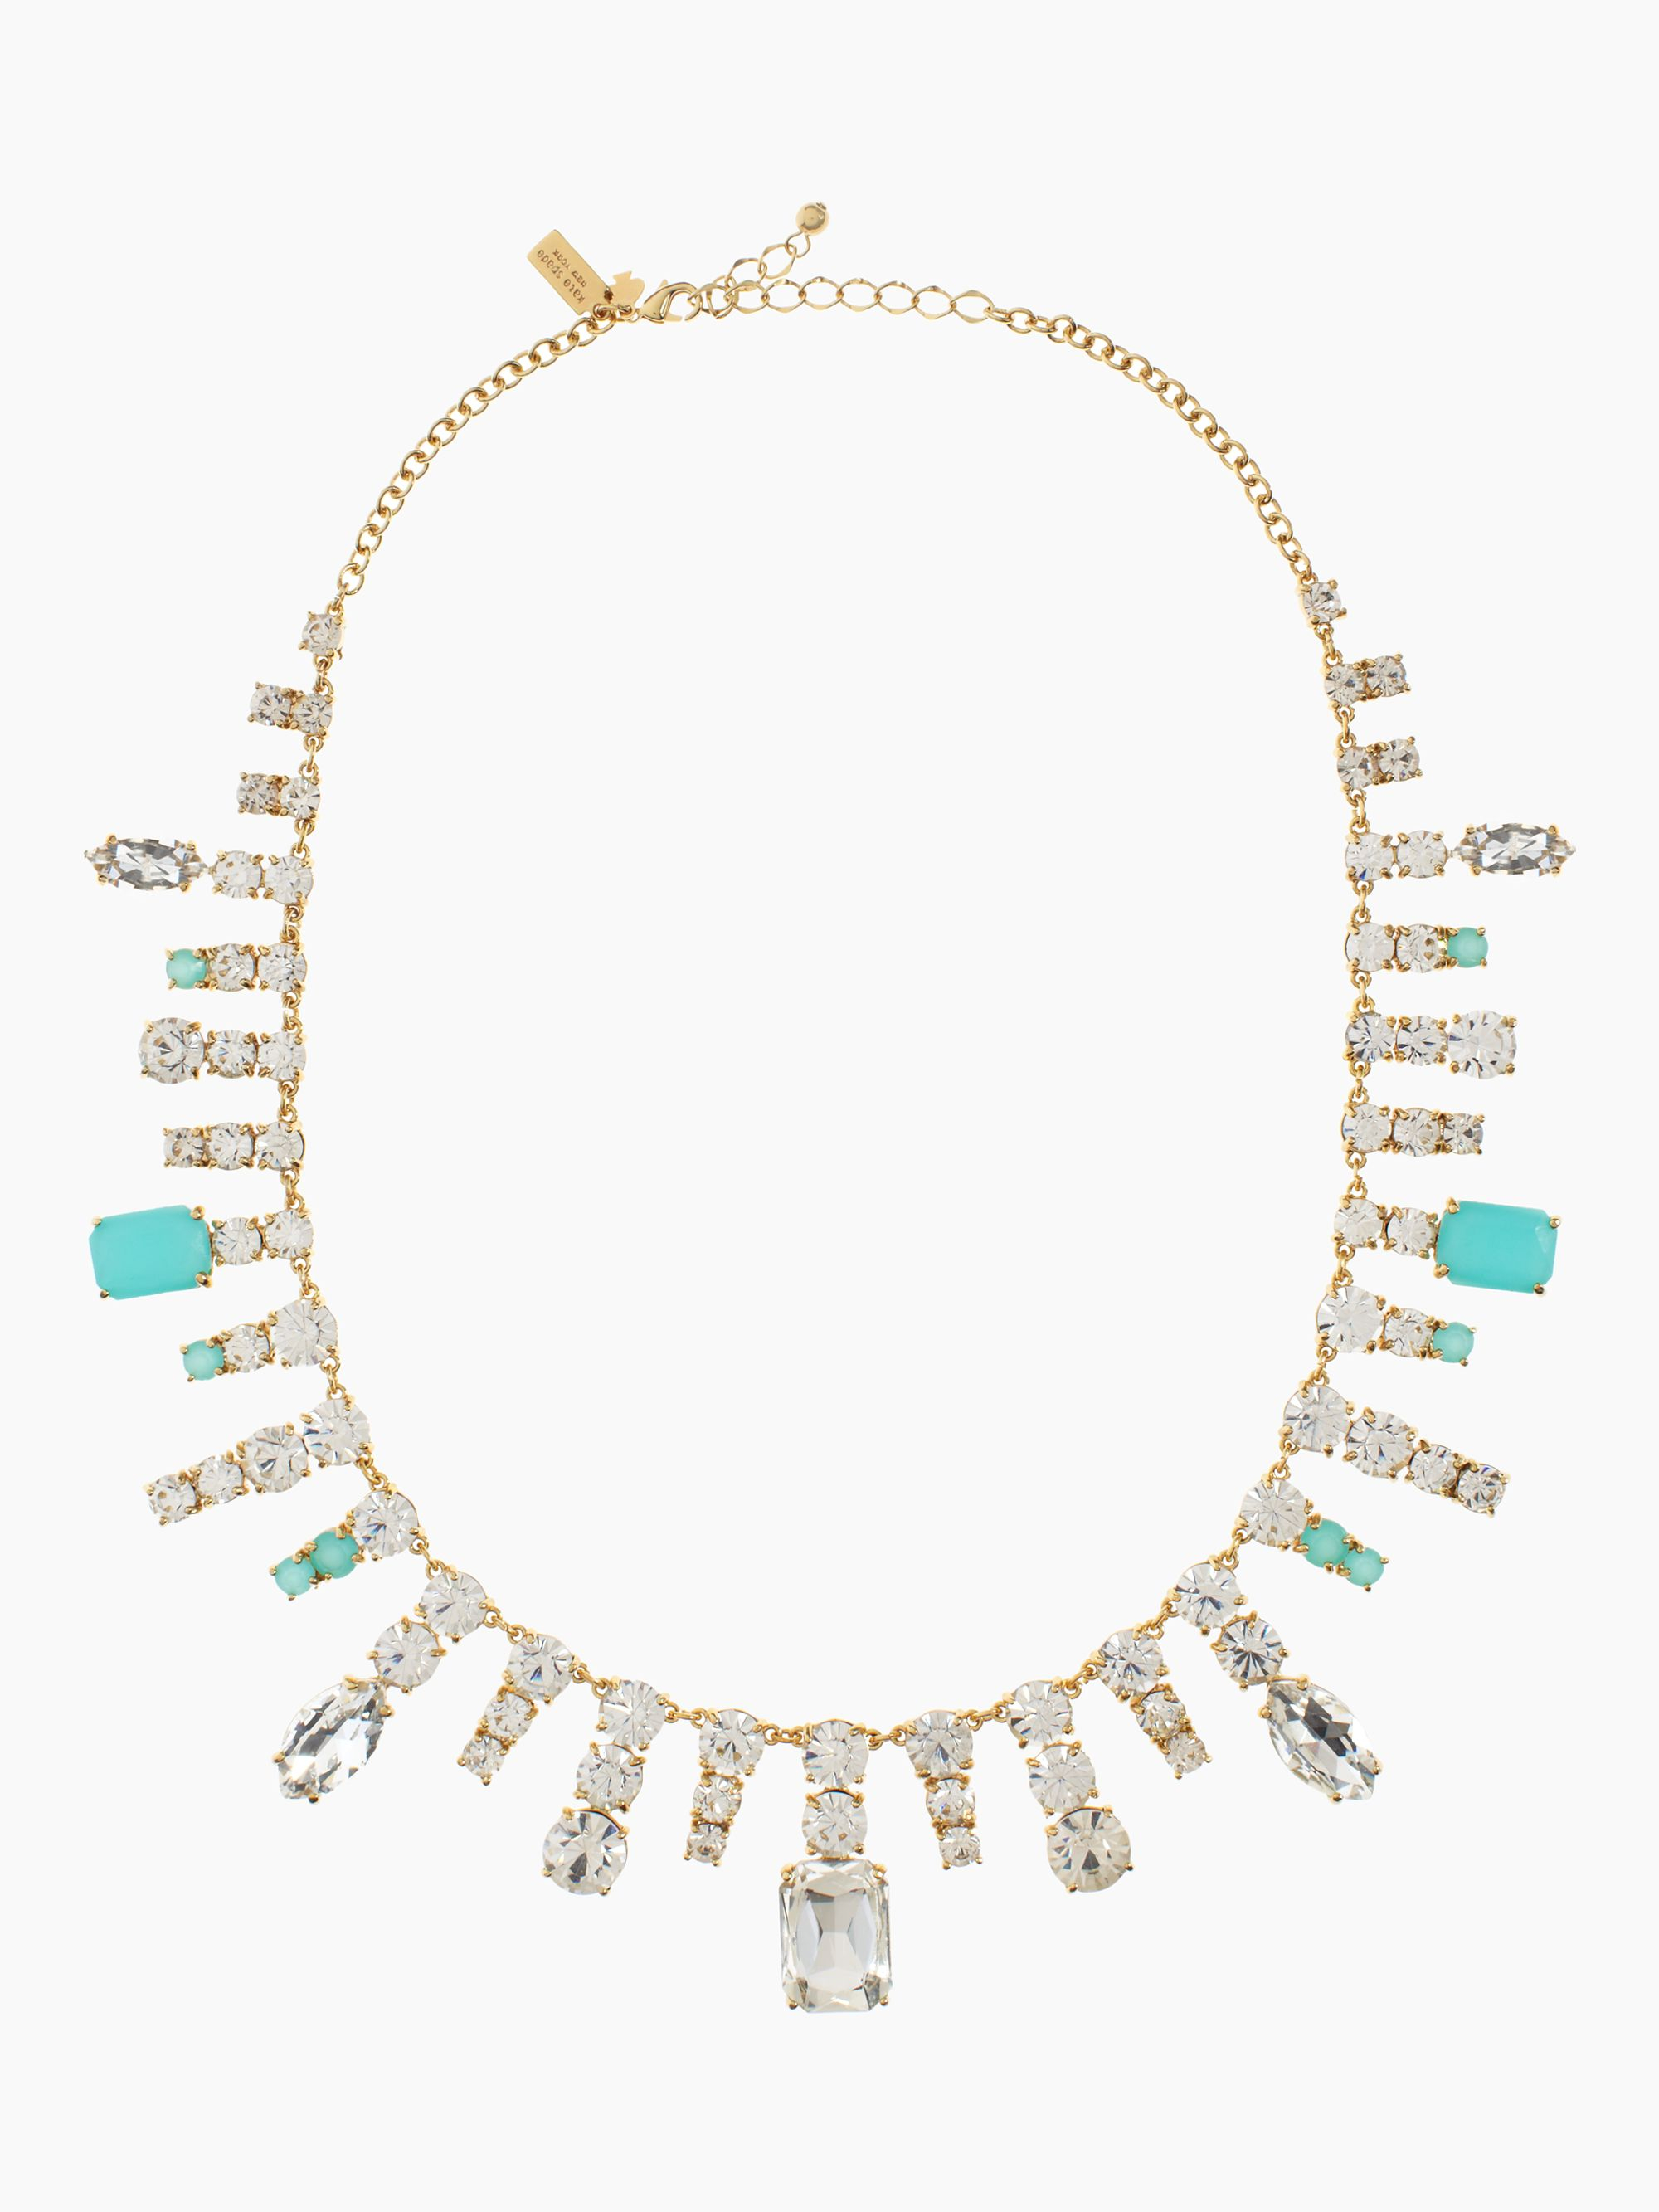 Kate spade new york Opening Night Spray Necklace in Blue